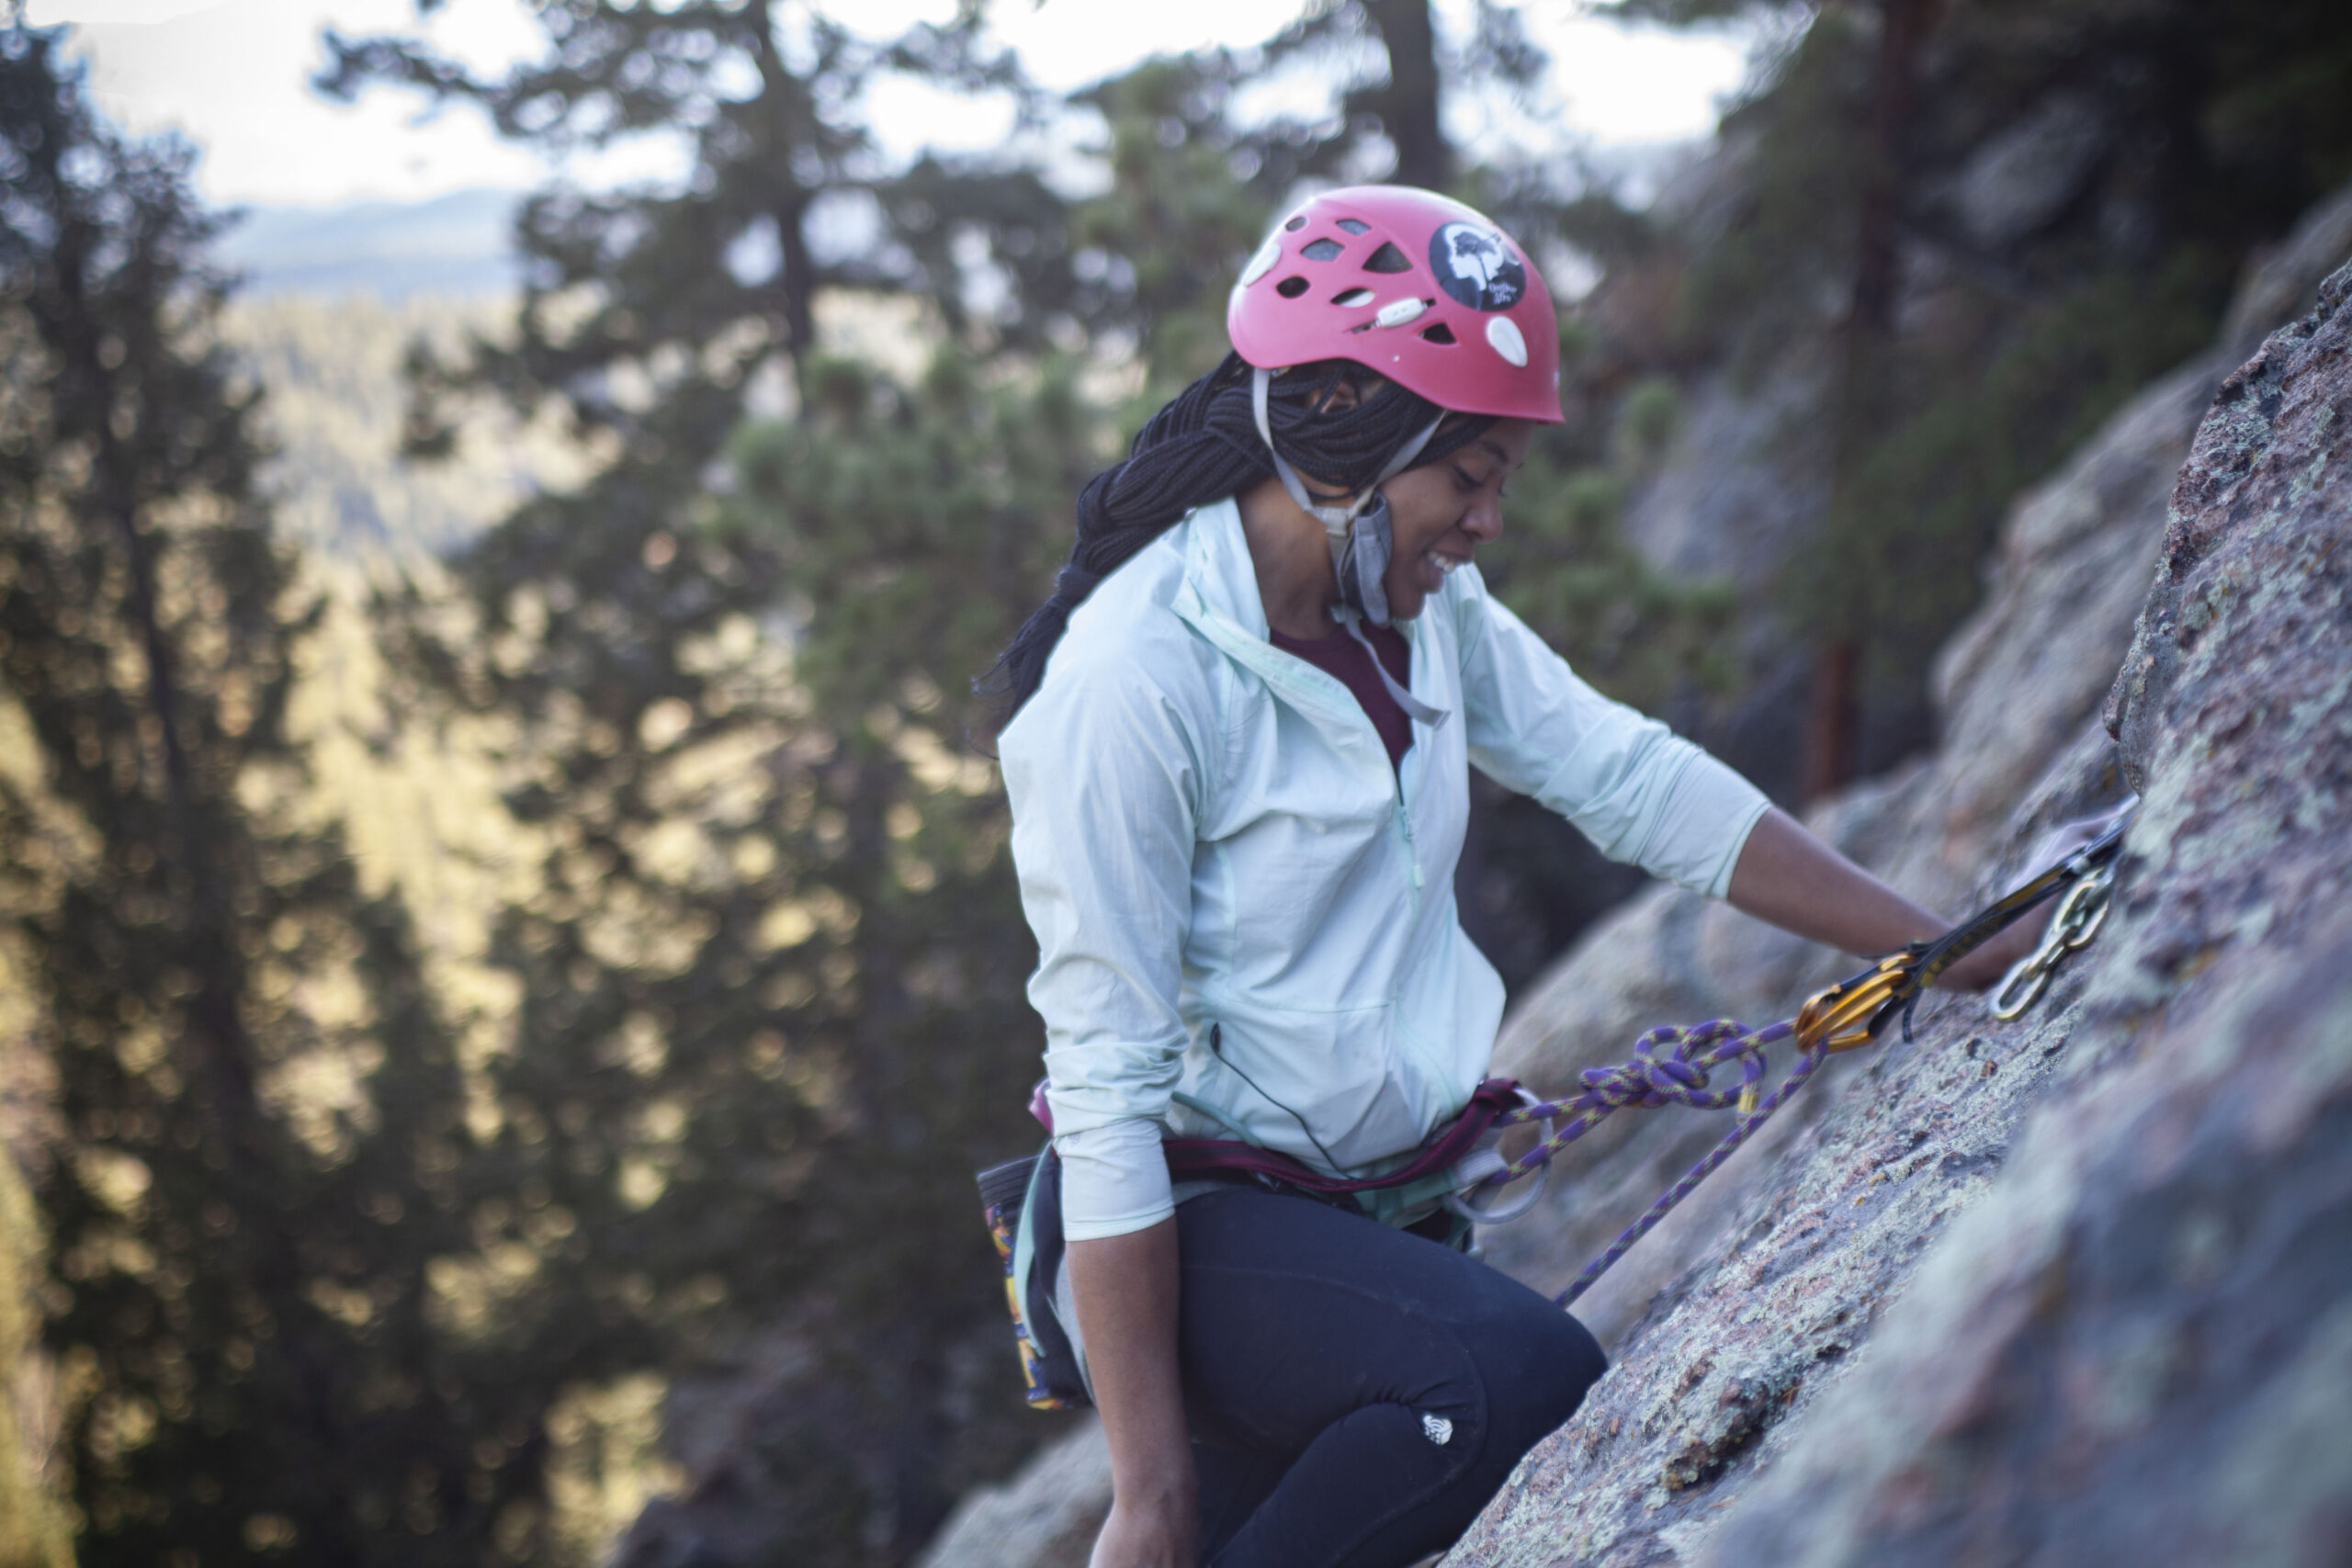 Brittany Leavitt of Brown Girls Climb at the top of the newly bolted route, tentatively called Patterson's Pitch. The route was named after Mary Jane Patterson, the woman who is presumed to be the first African-American woman to receive a Bachelor's degree.